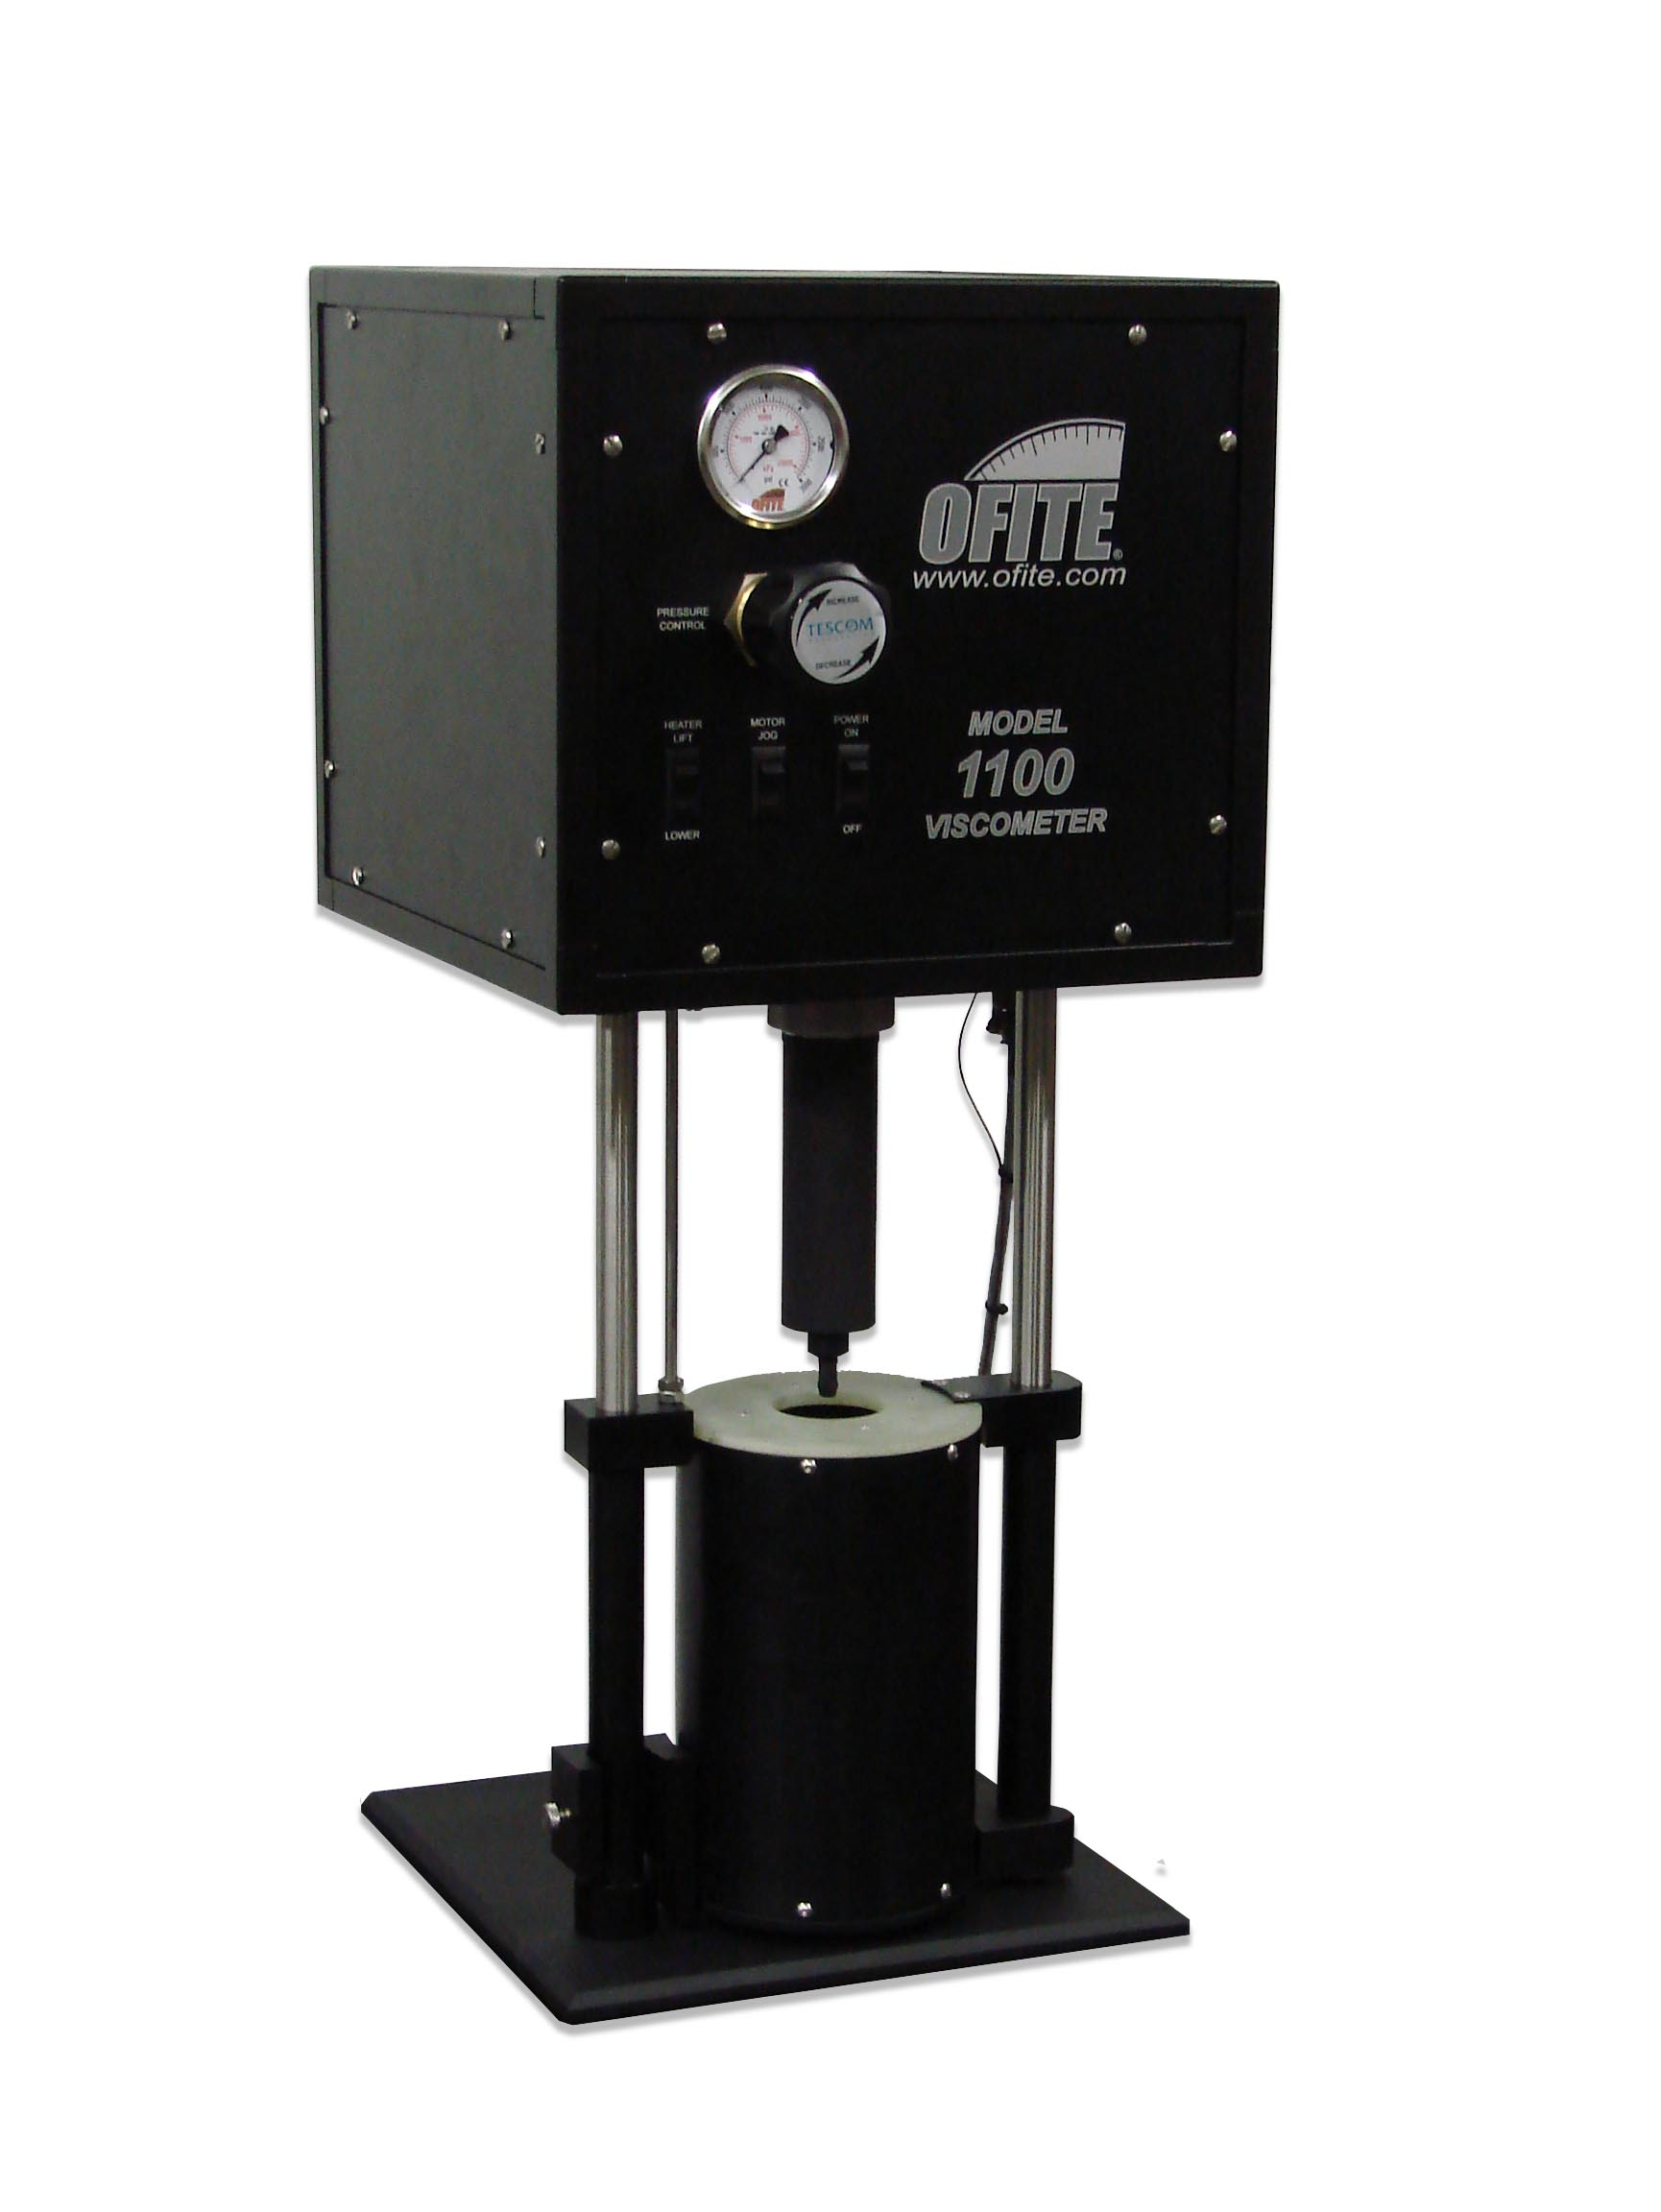 OFITE - Model 1100 - Viscometer